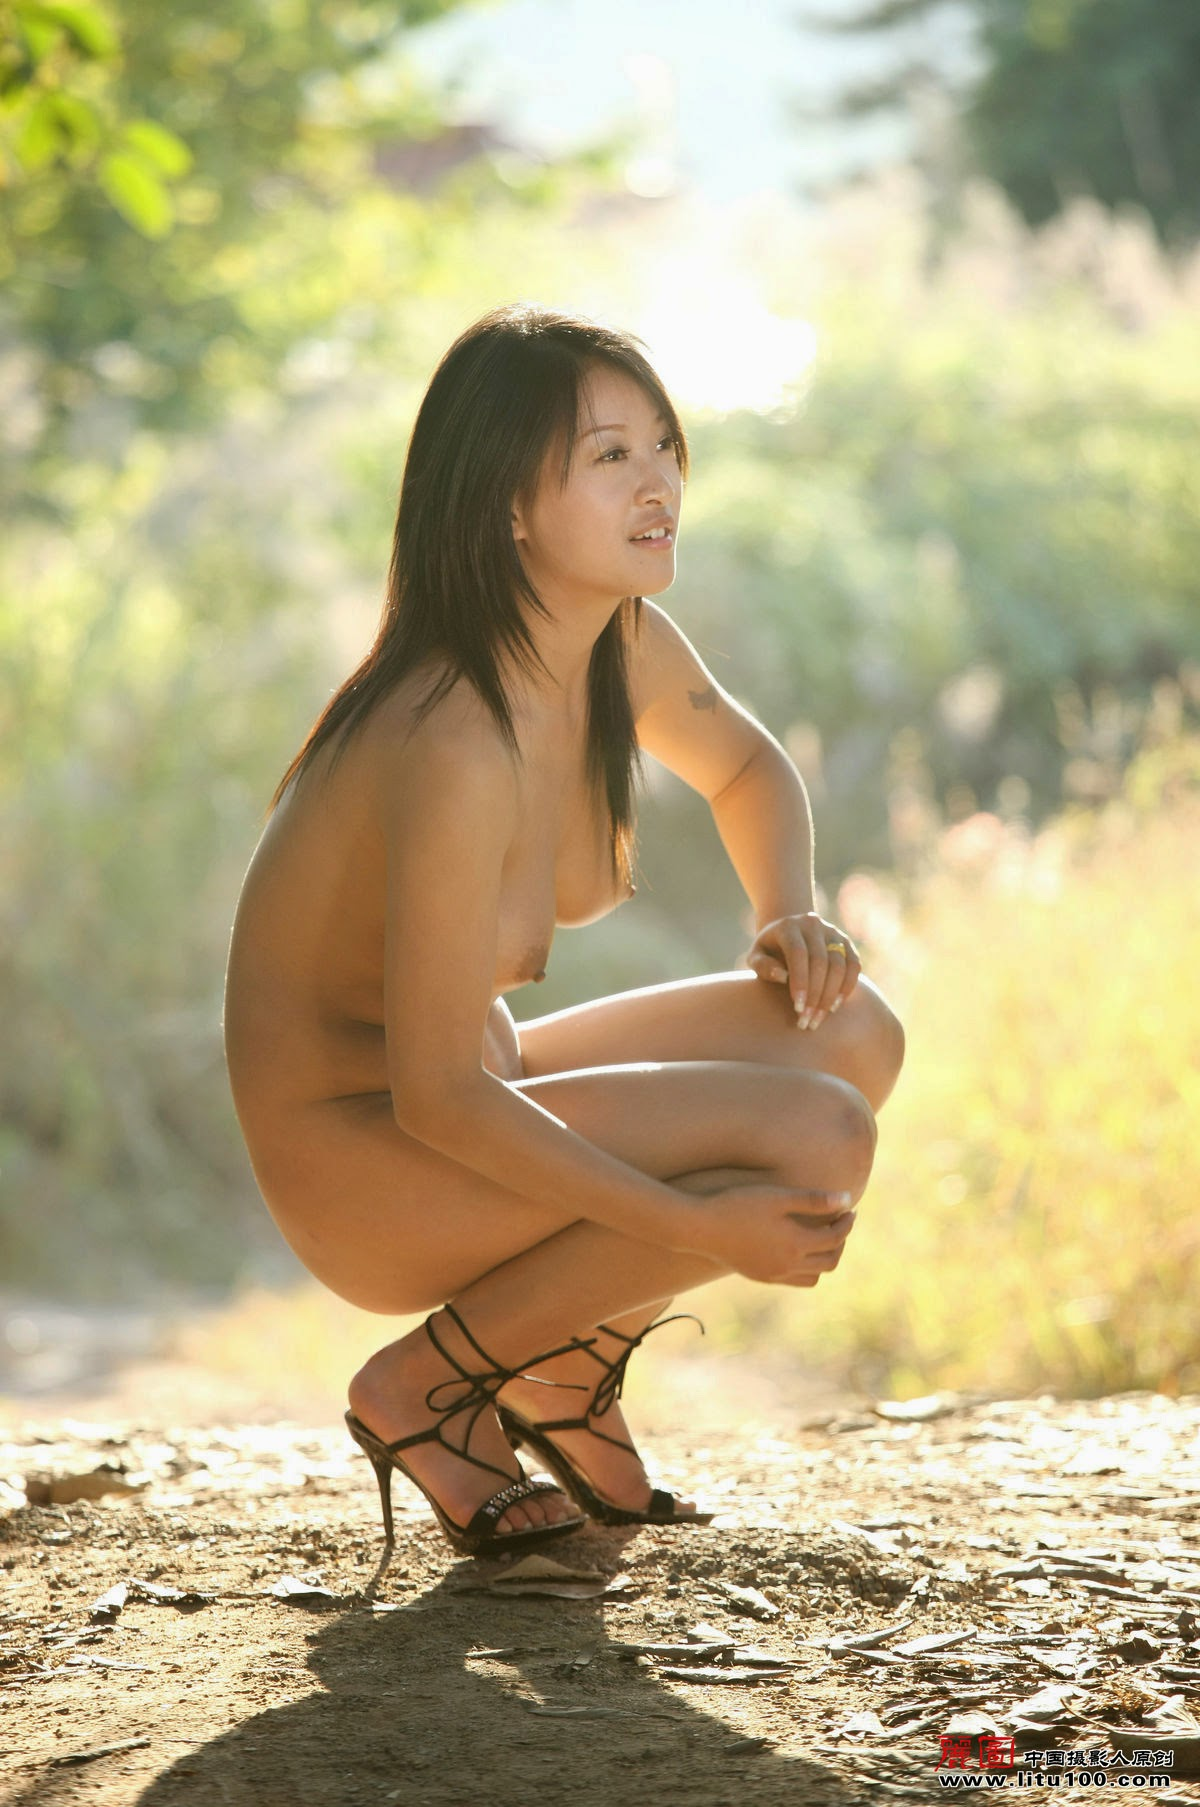 litu 100 archives: Chinese Nude Model You Xuan 02 [Litu100] | chinesenudeart photos